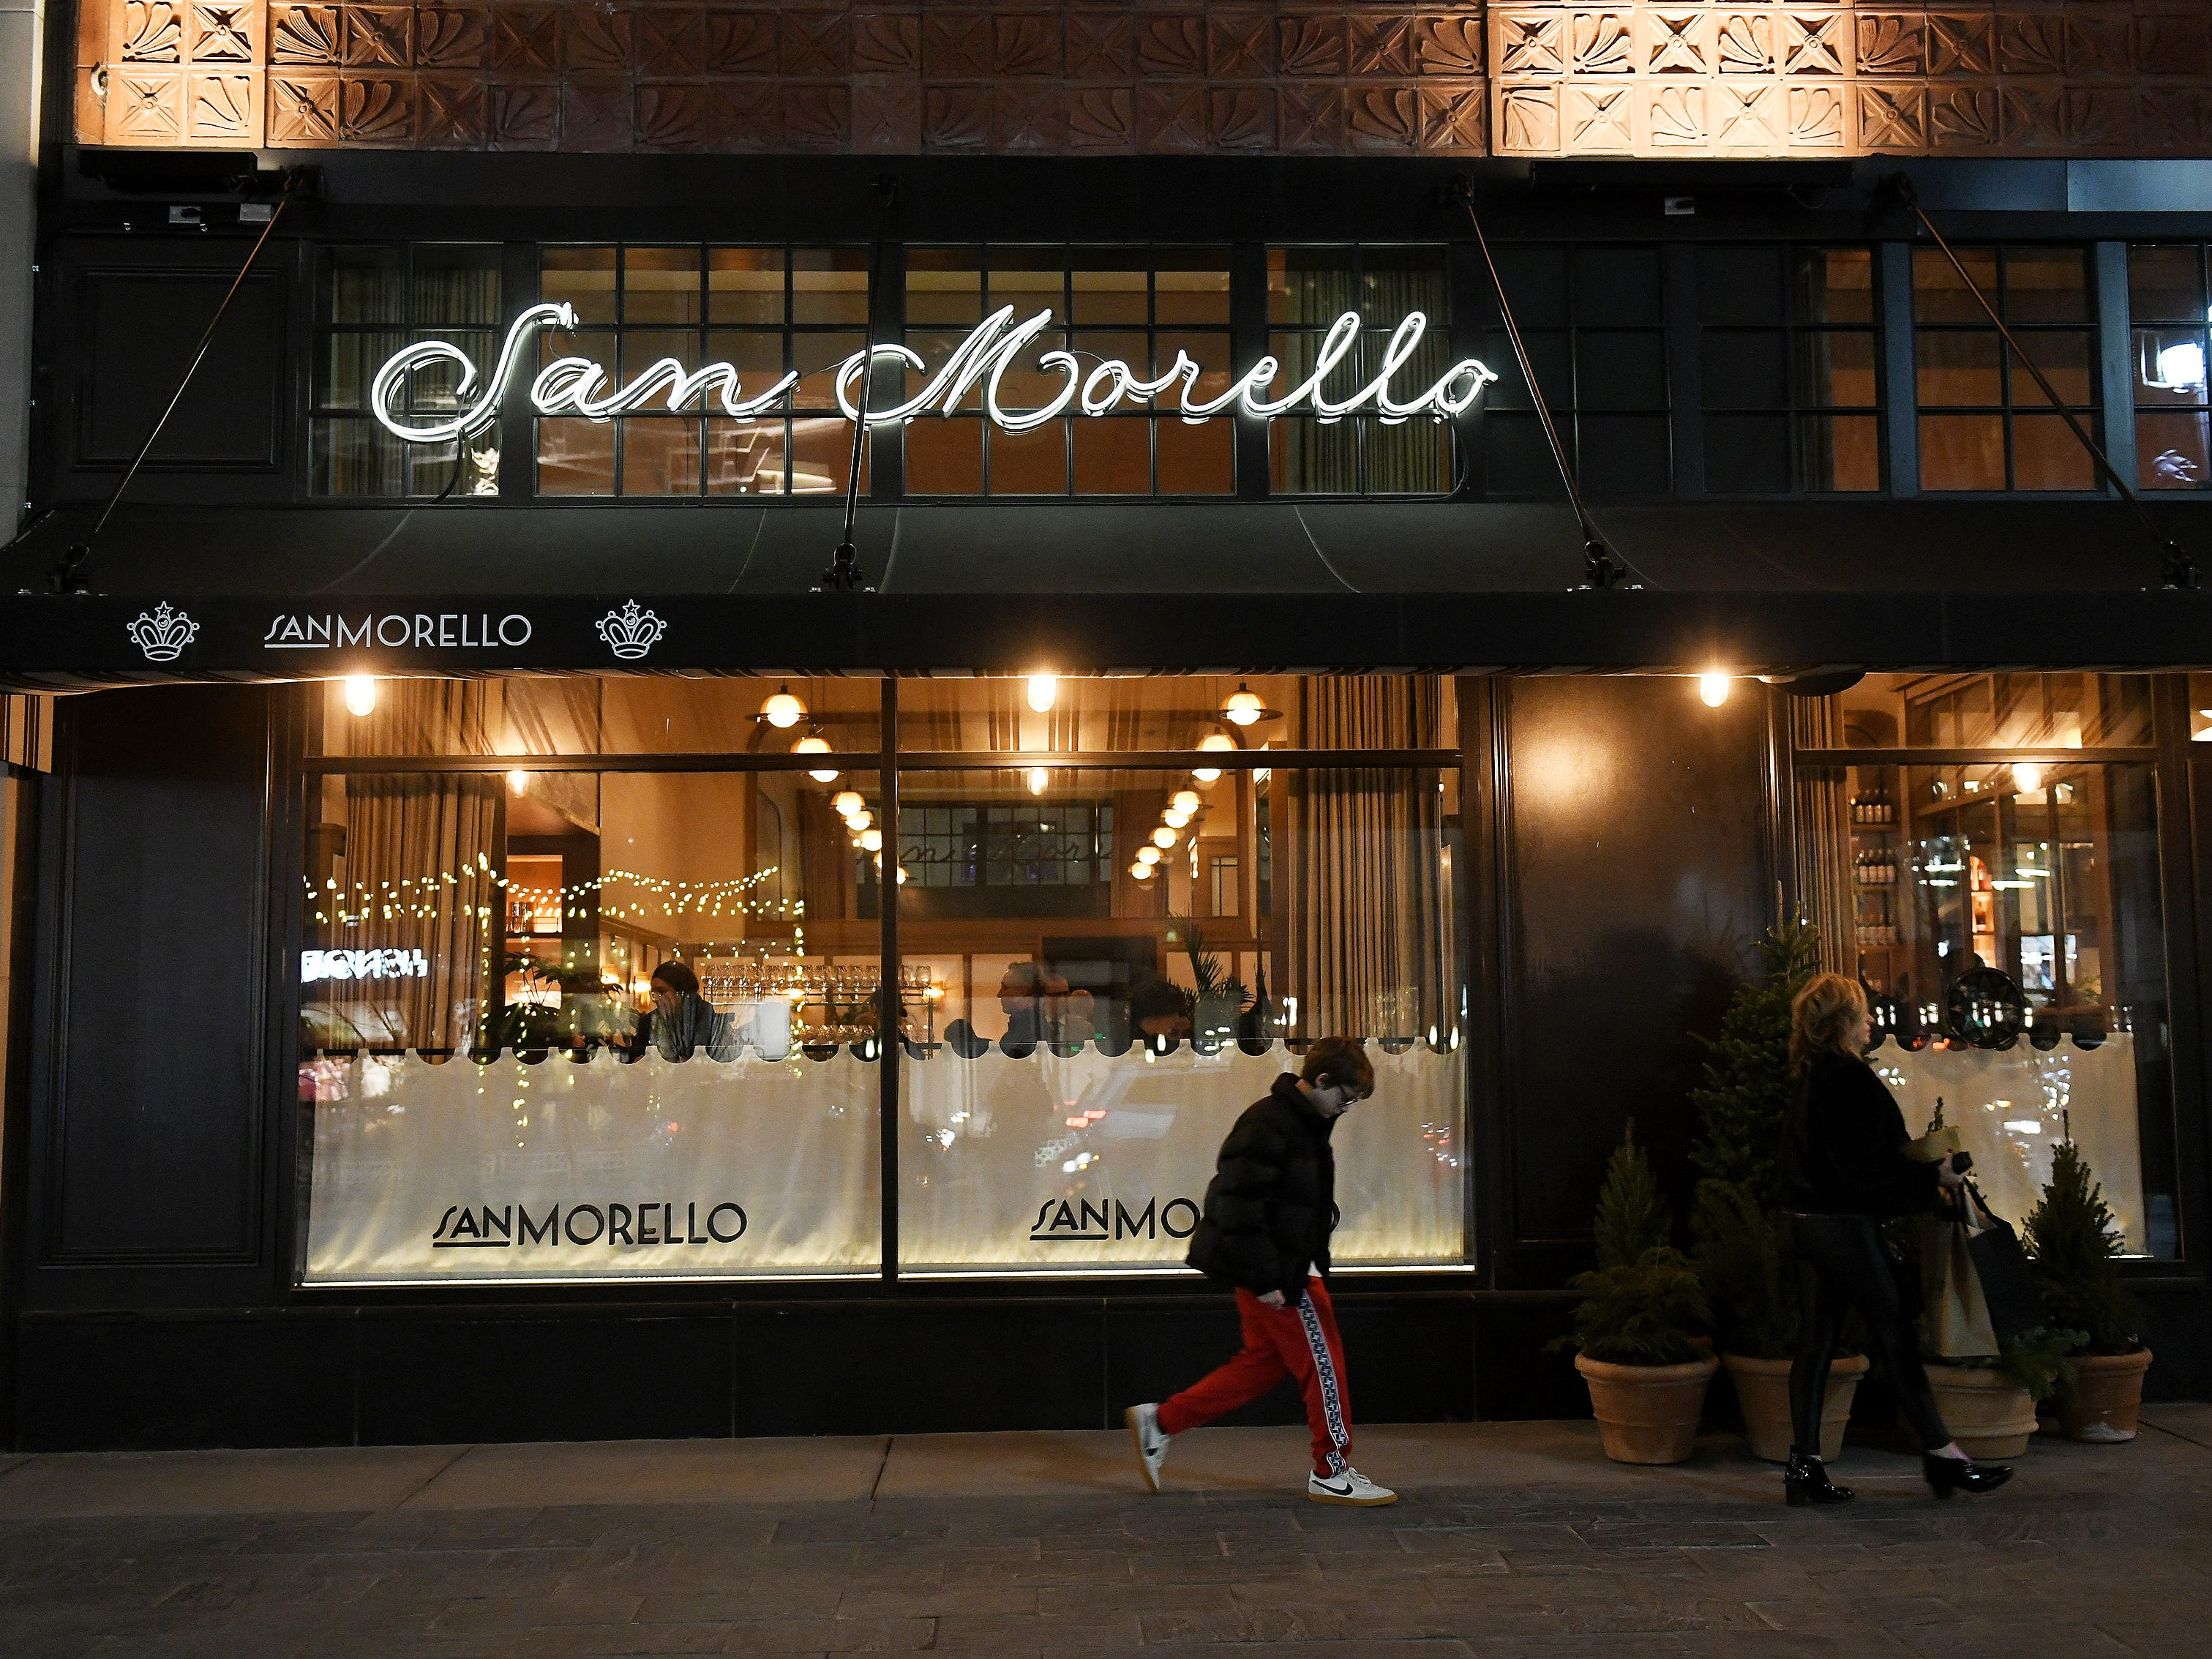 The Shinola Hotel is home to a restaurant, San Morello, with chef Andrew Carmellini.